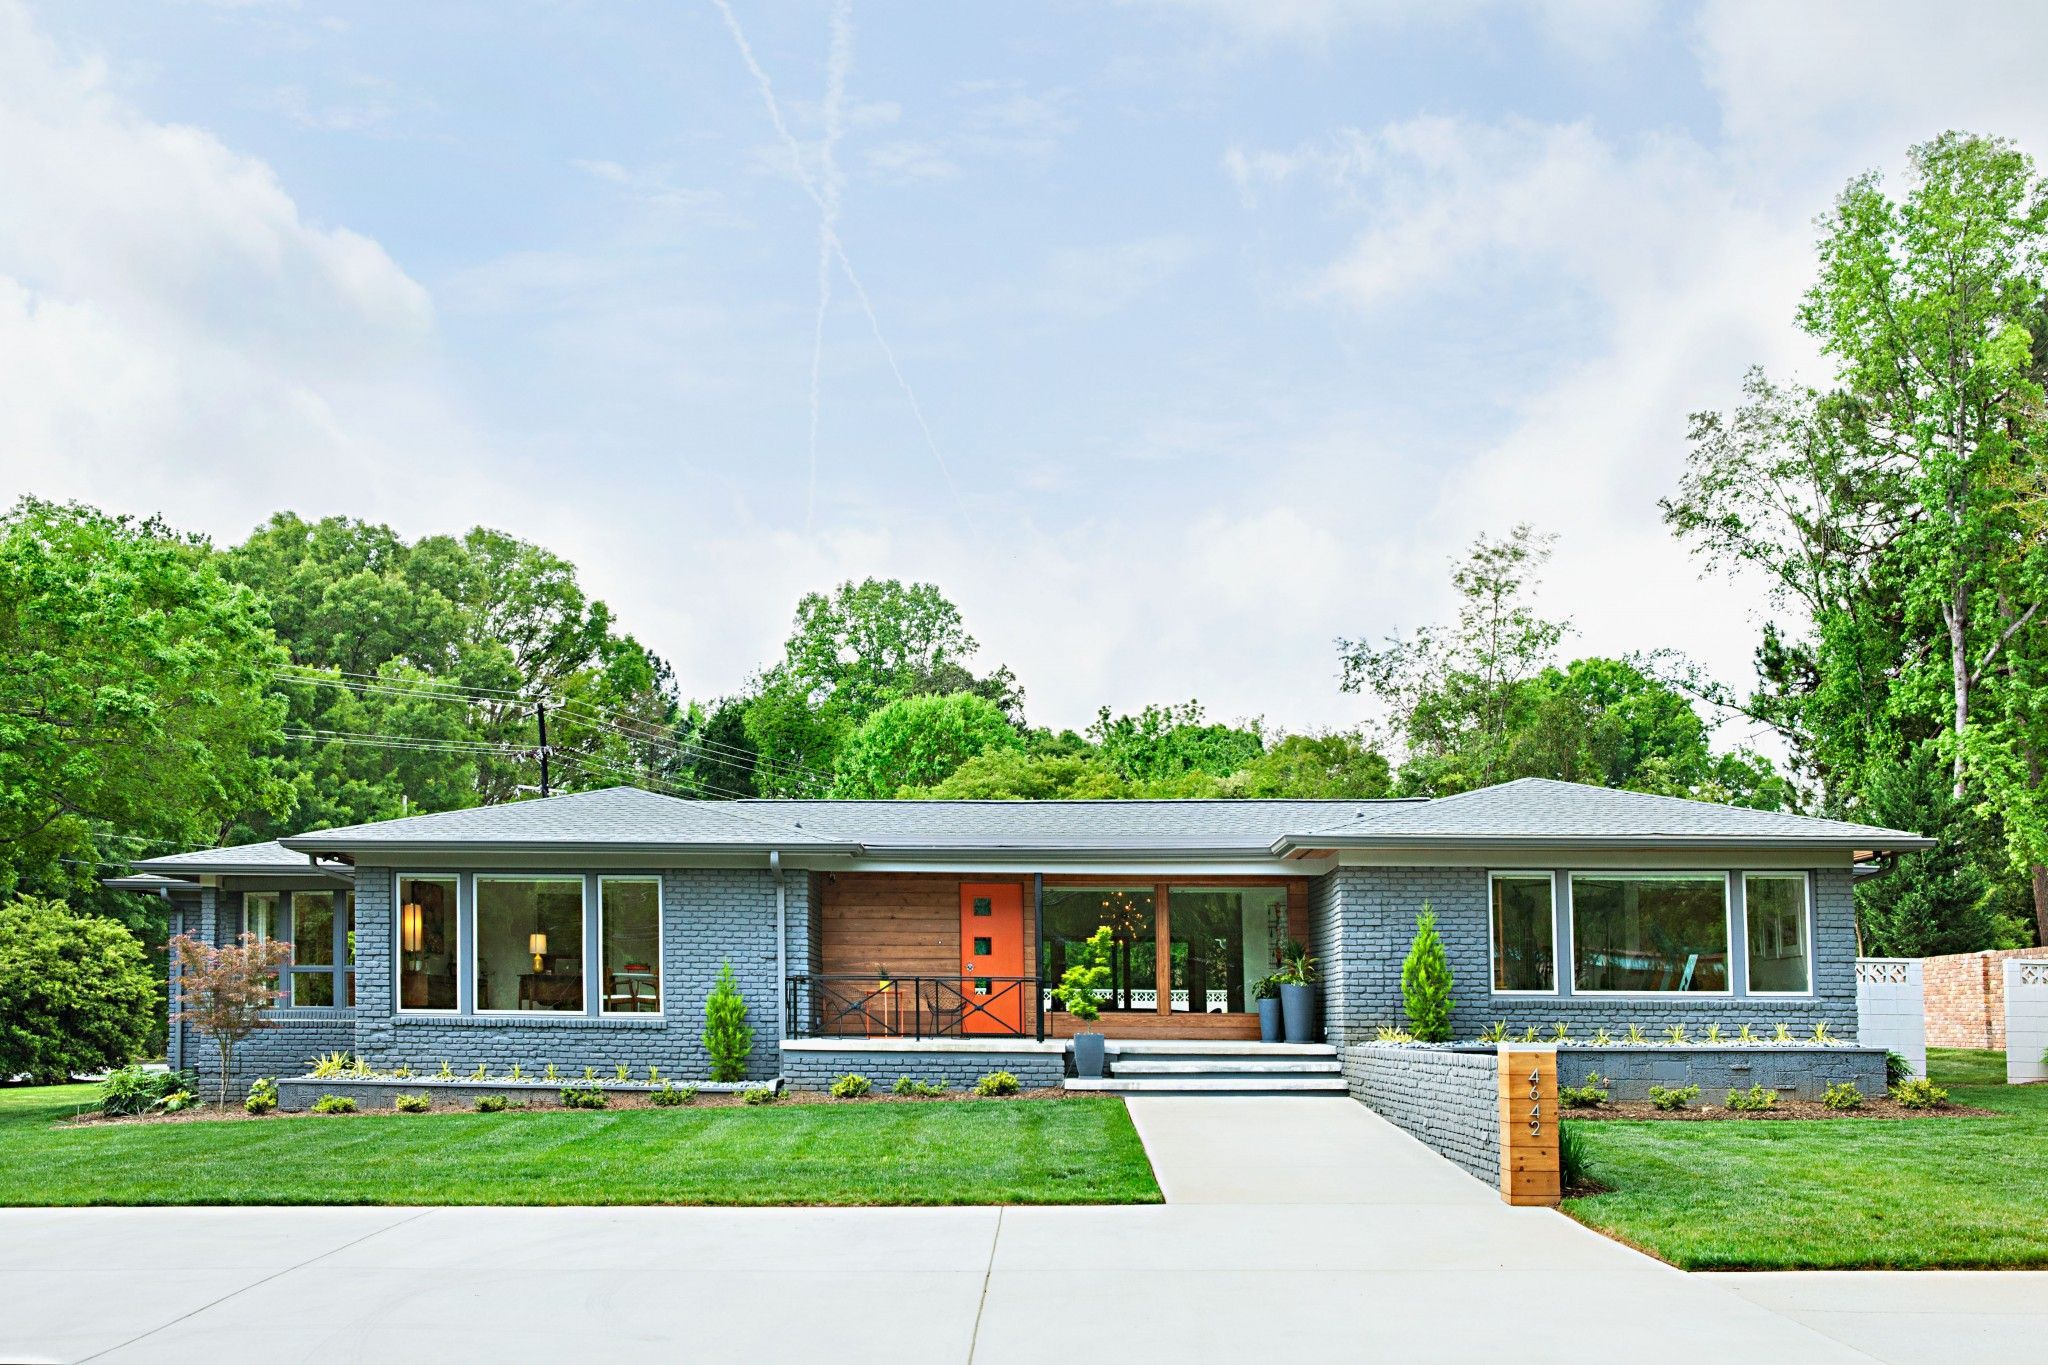 Image Result For Brick Bungalow Curb Appeal Mid Century